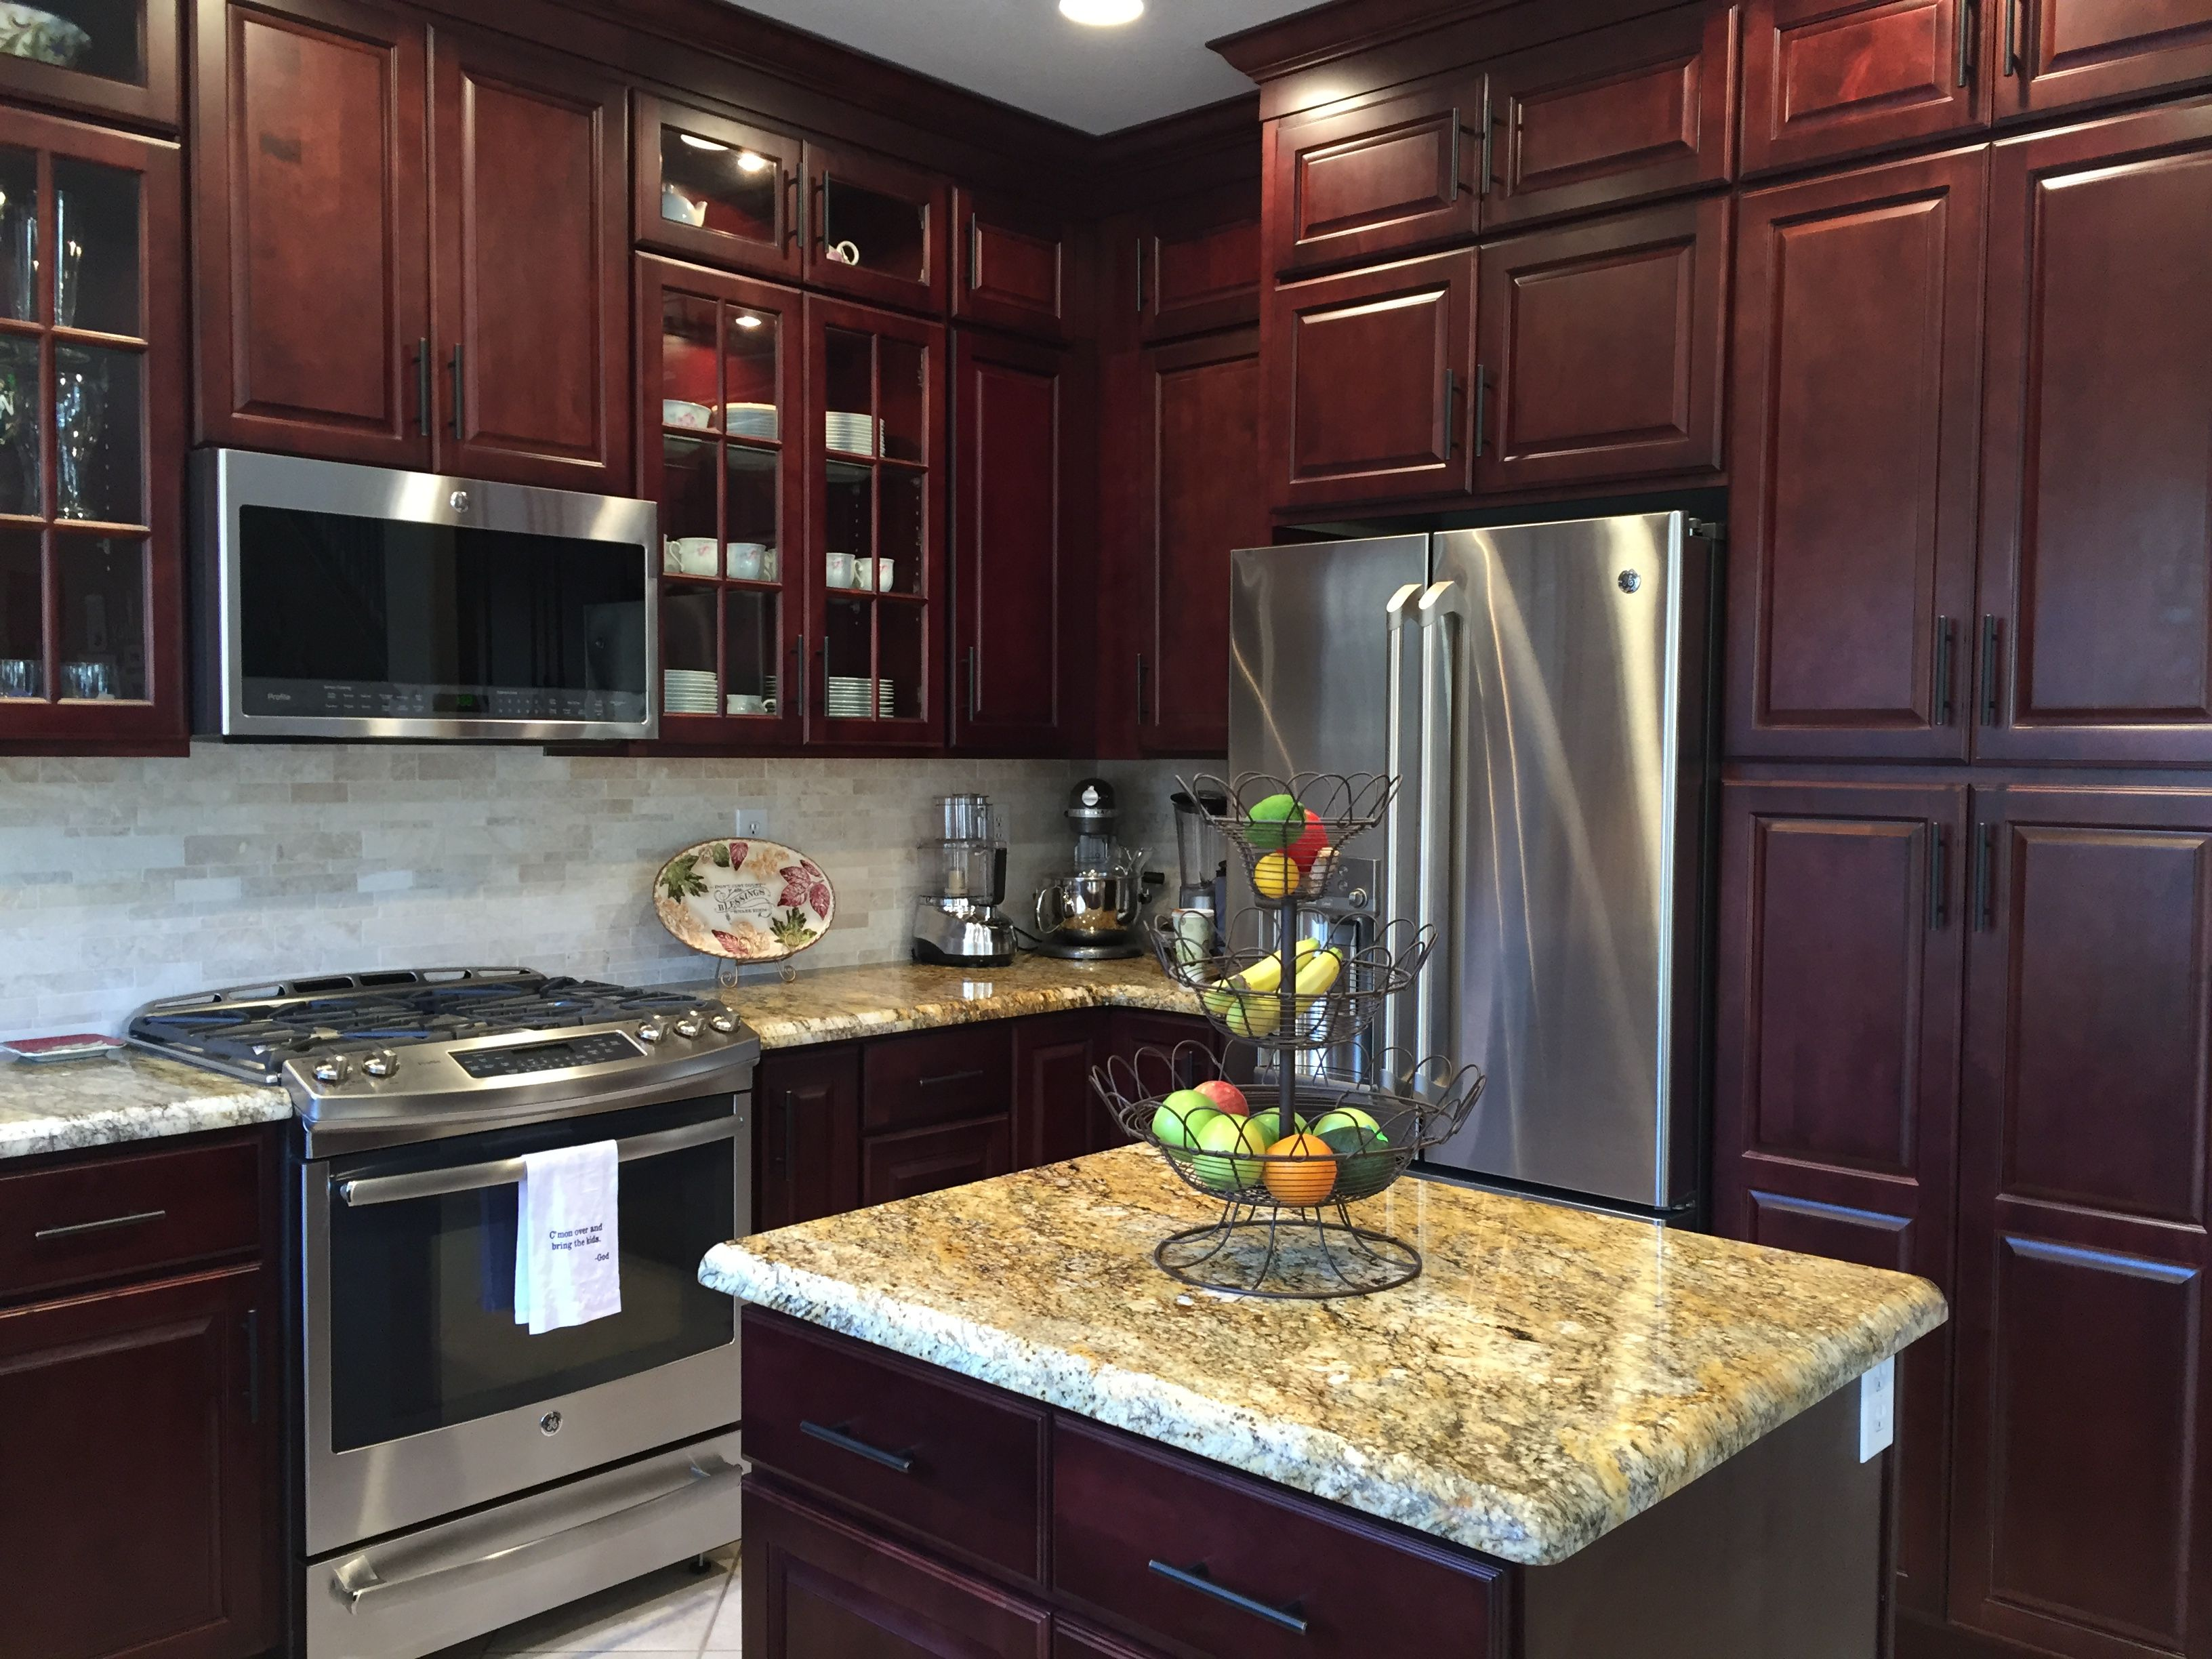 cabinets to the ceiling lighted cabinets with images home decor home kitchen cabinets on kitchen cabinets to the ceiling id=18342